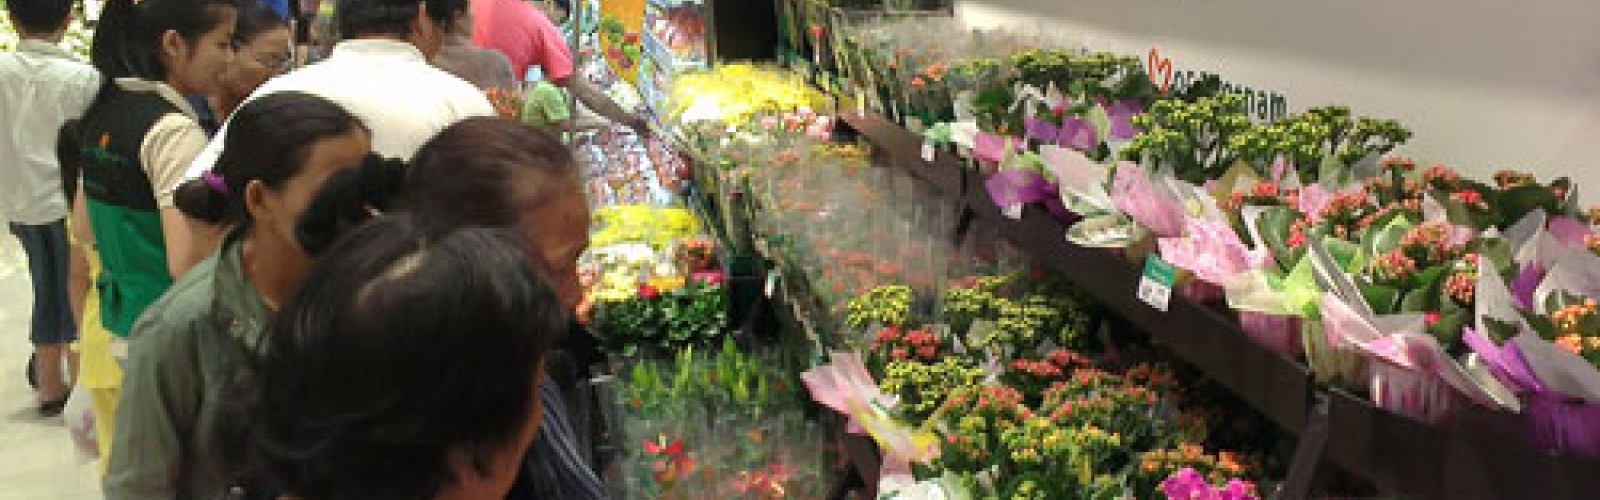 Dalat Hasfarm opened new flowers booth at AEON MALL